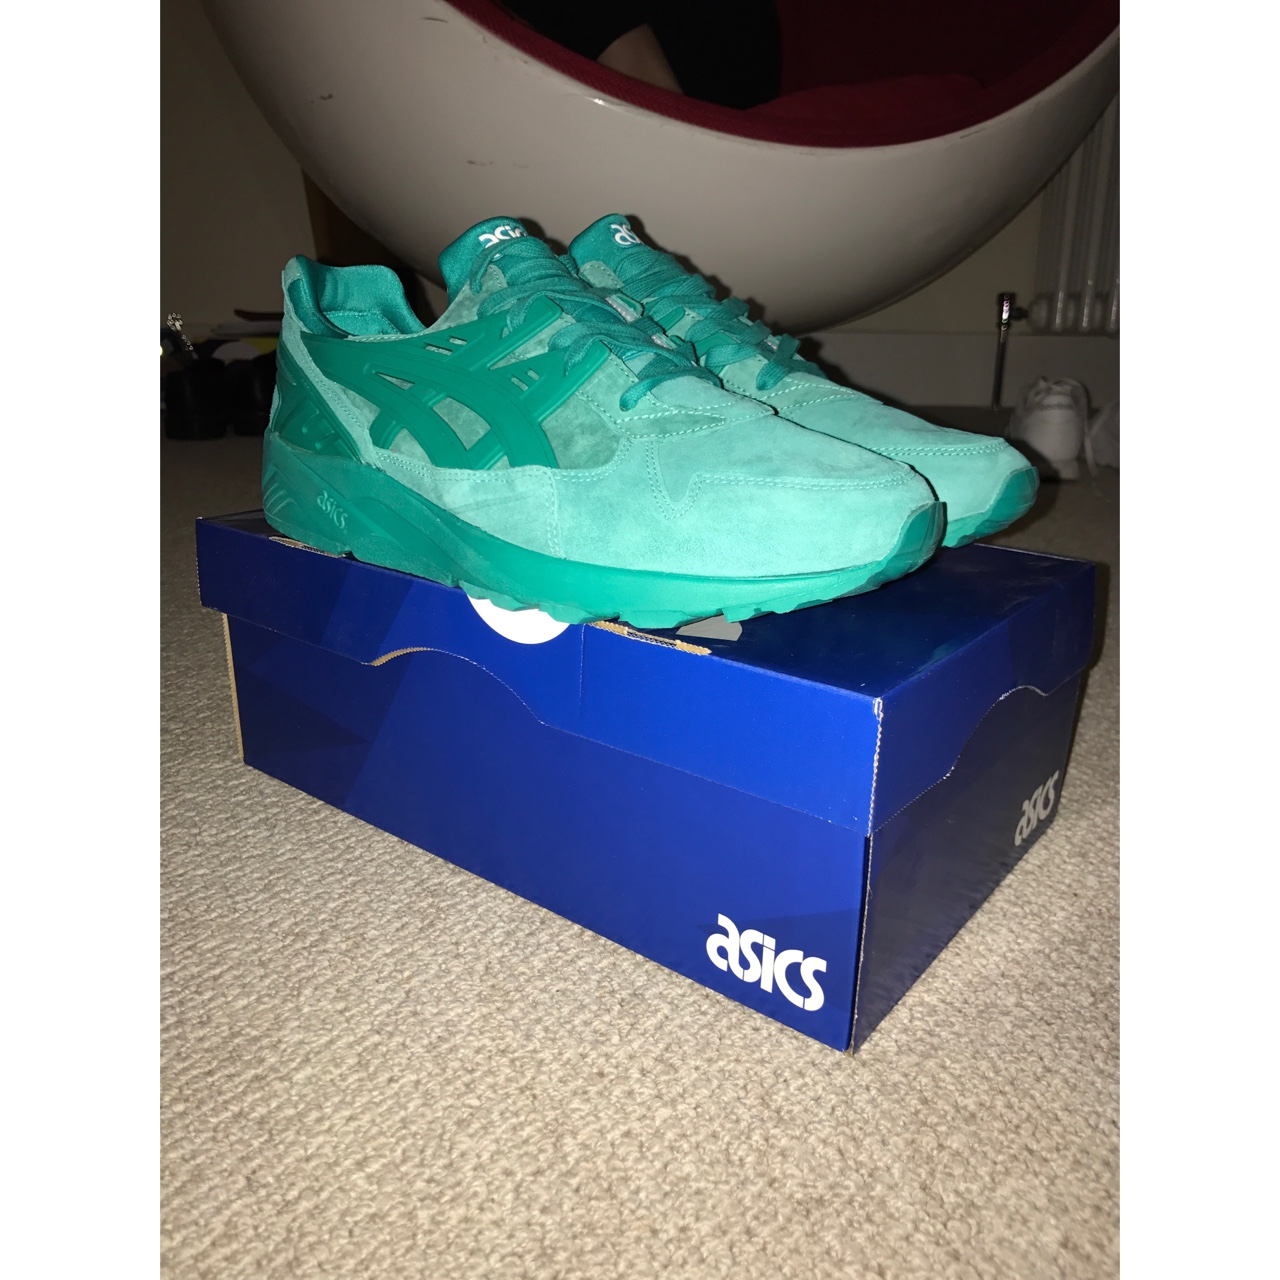 official photos a9407 e8937 ASICS GEL KAYANO SPECTRA GREEN. UK 9. 10/10... - Depop